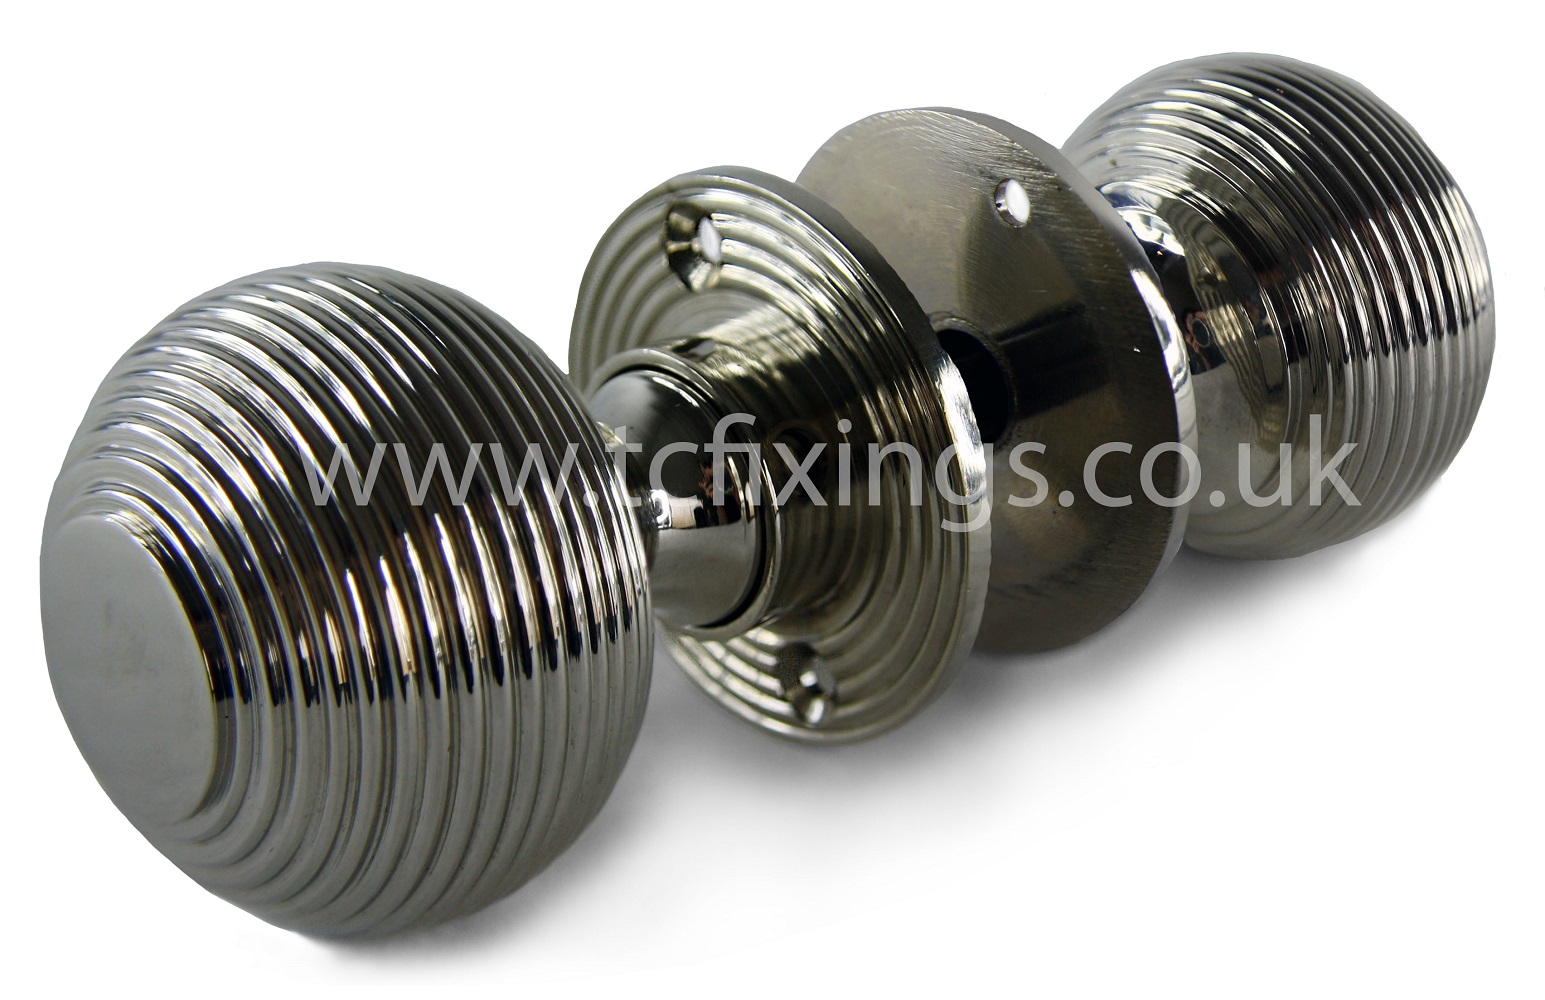 MDS DBEE2 59mm Beehive Knob Polished Nickel